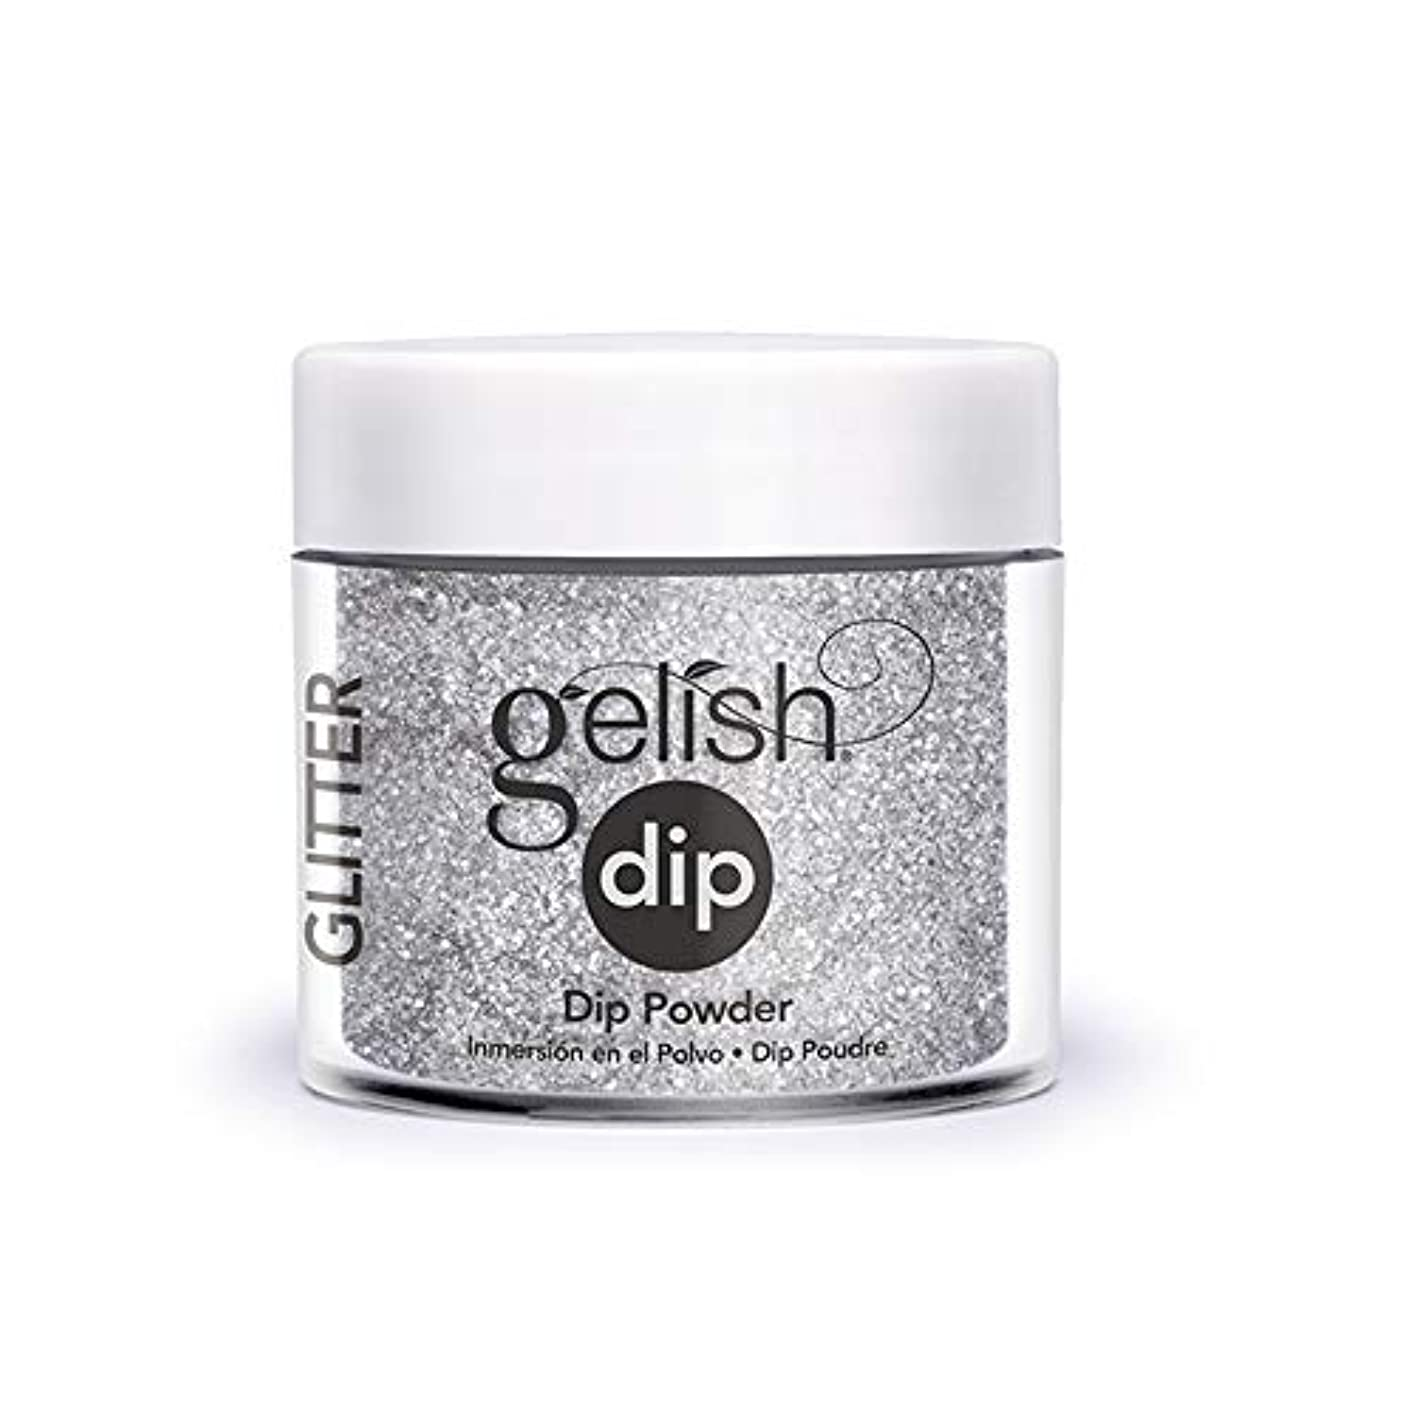 露出度の高いどちらか編集者Harmony Gelish - Acrylic Dip Powder - Time to Shine - 23g / 0.8oz